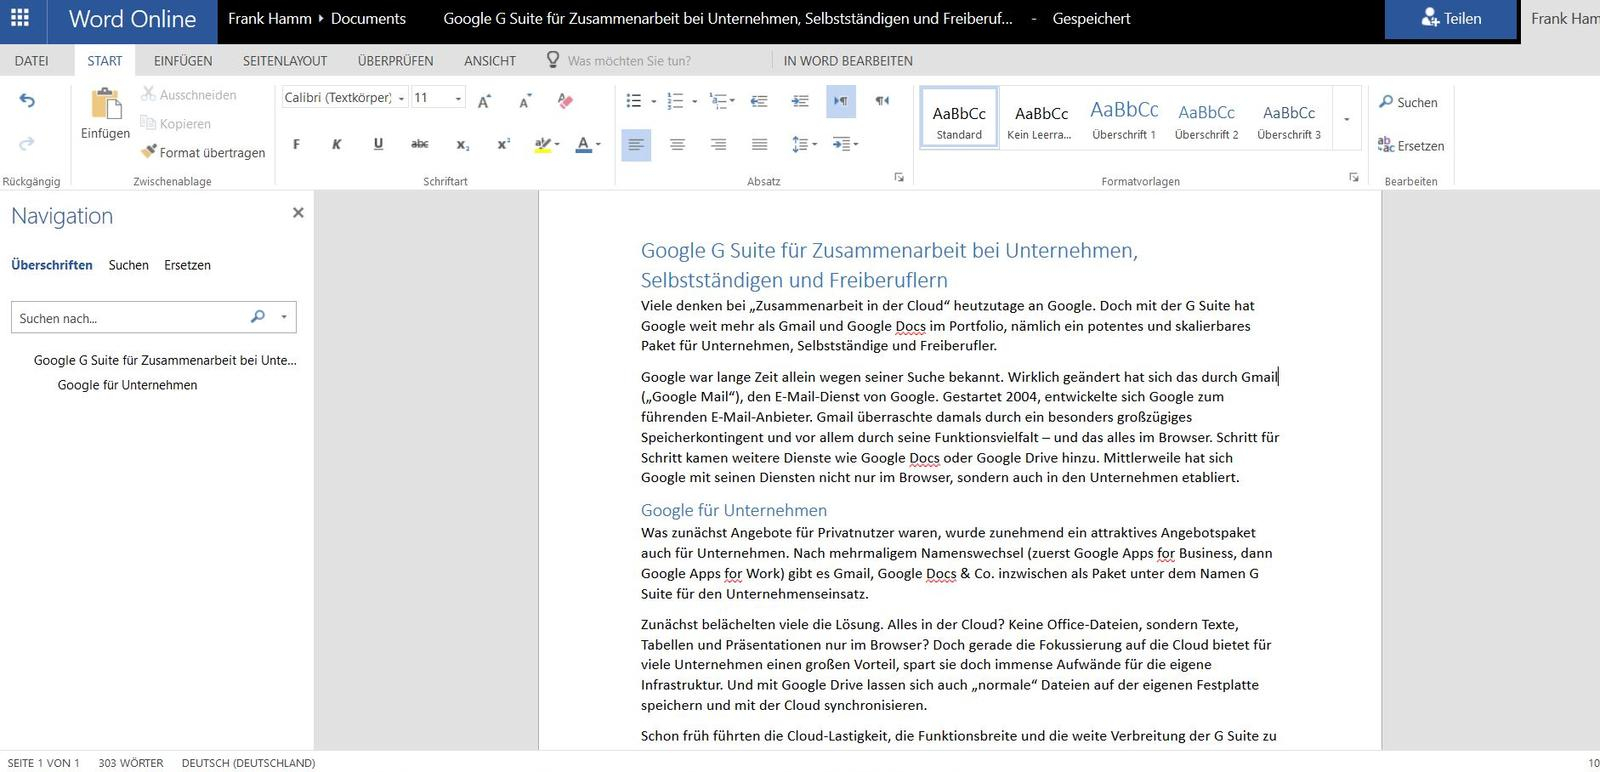 Spreadsheet Compare Office 365 Regarding Can You Compare Google G Suite And Microsoft Office 365?  News